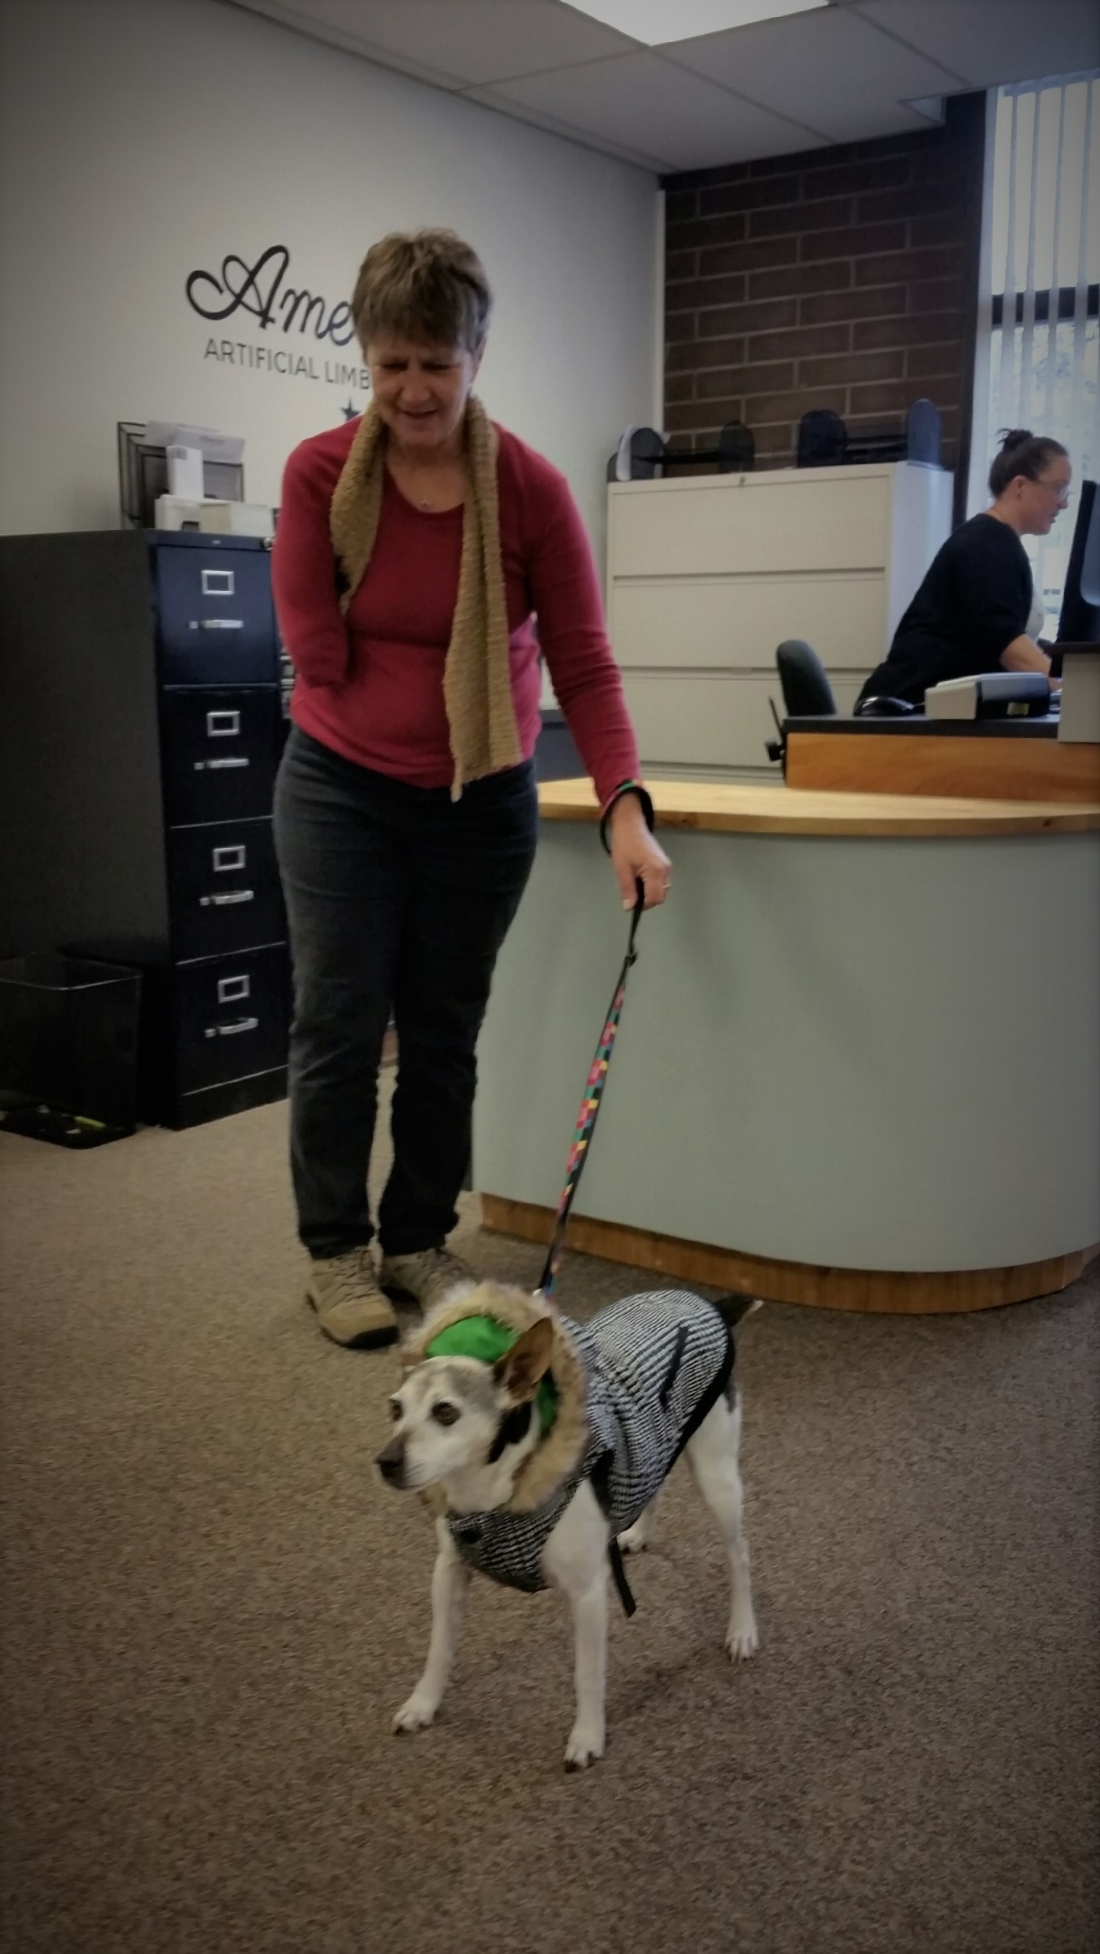 Shelby and her sweet dog came in yesterday. (That's Melanie, our admin assistant in the background)